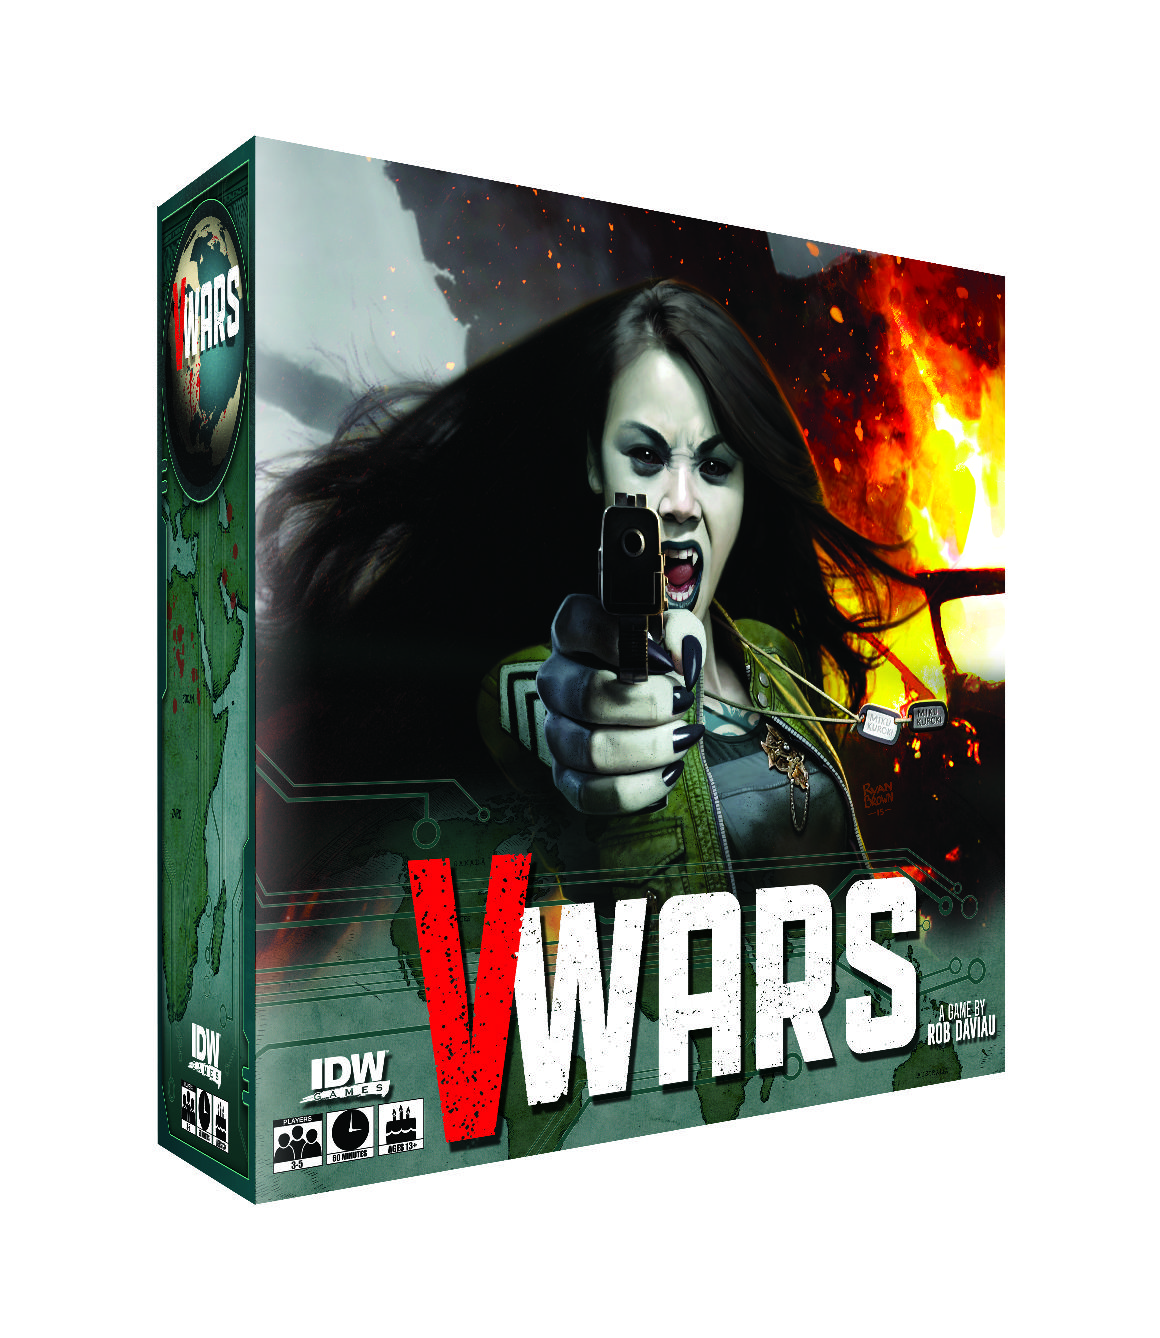 v-wars-box-art